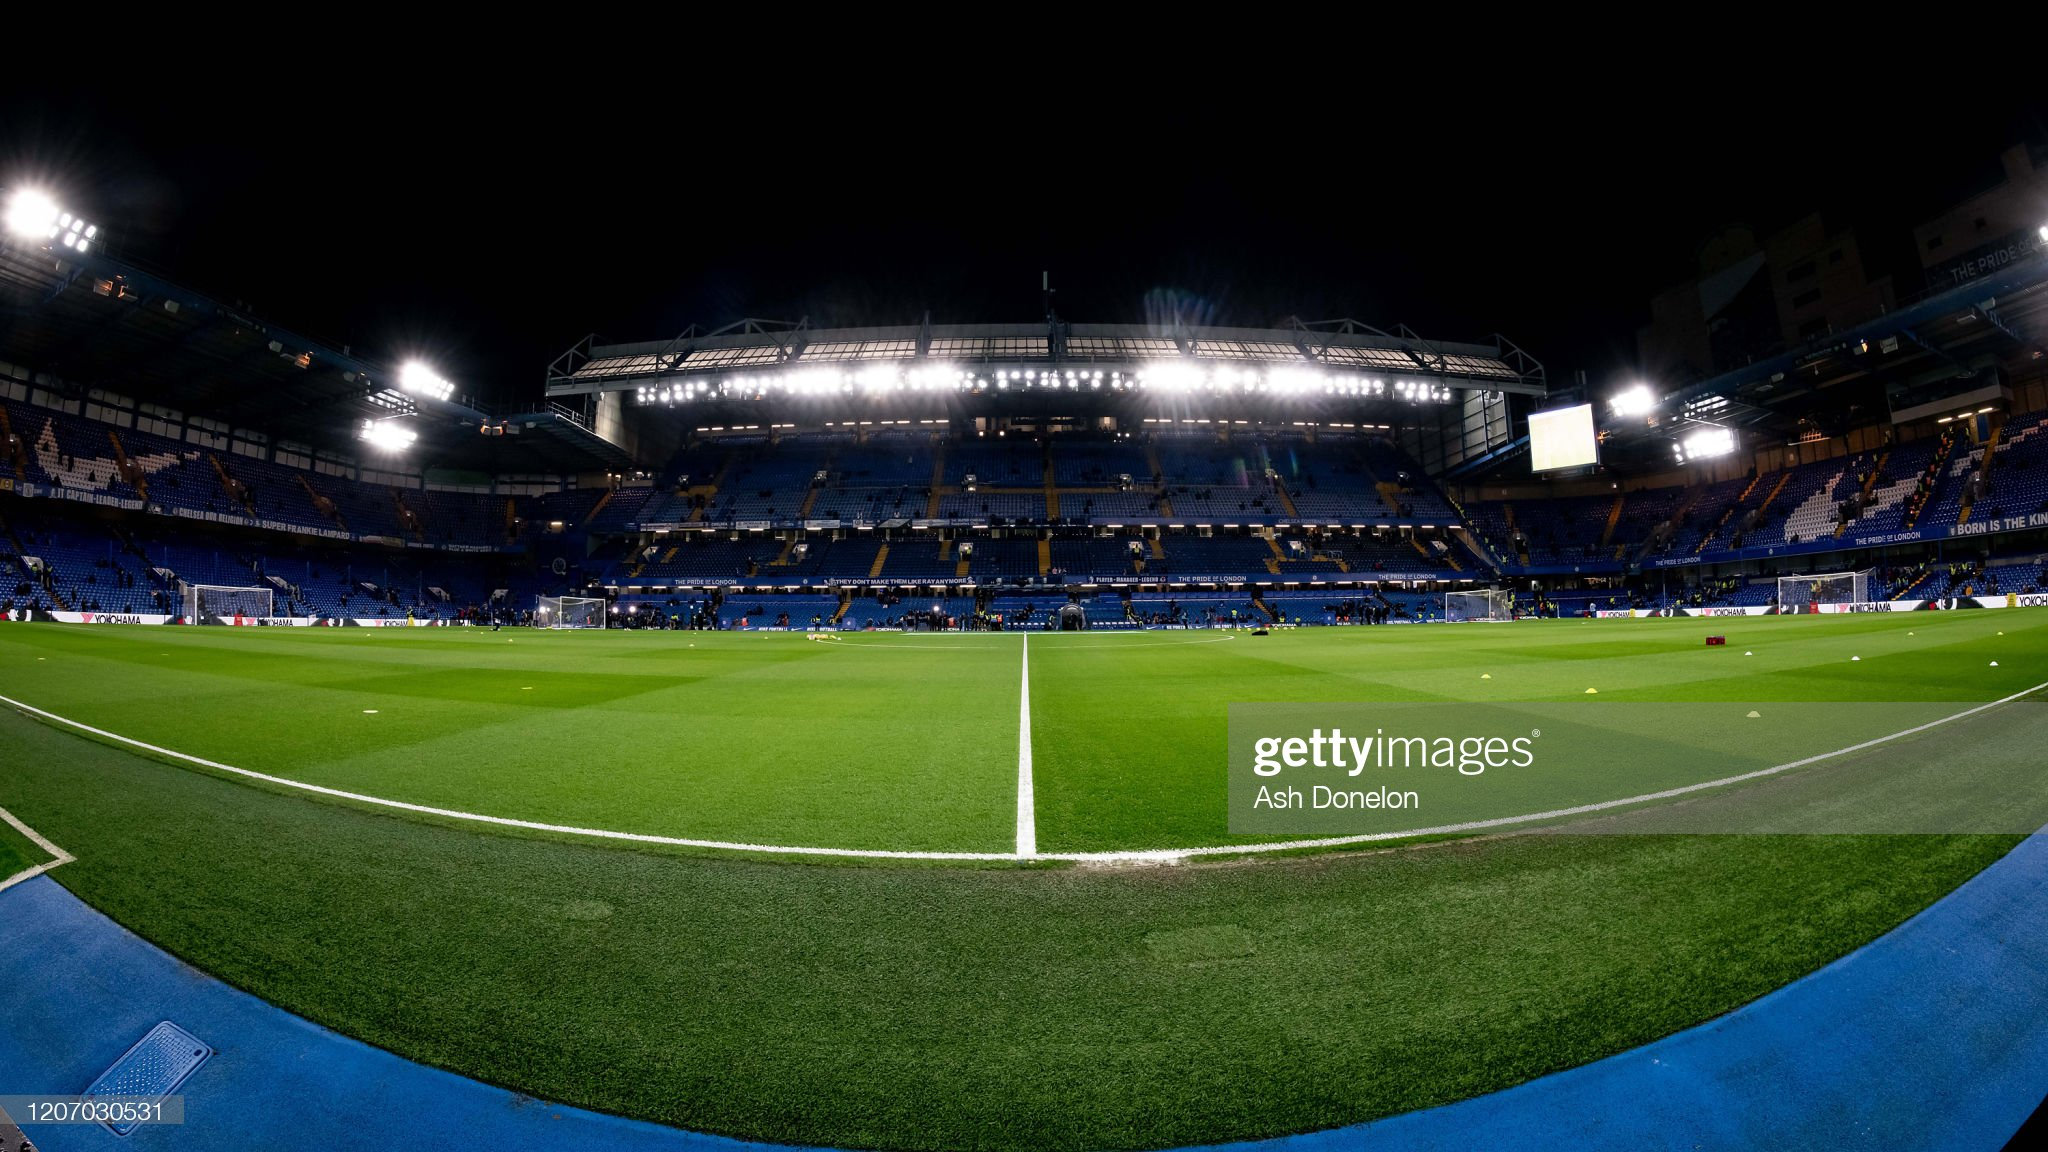 Chelsea v Bayern Munich Preview, prediction and odds